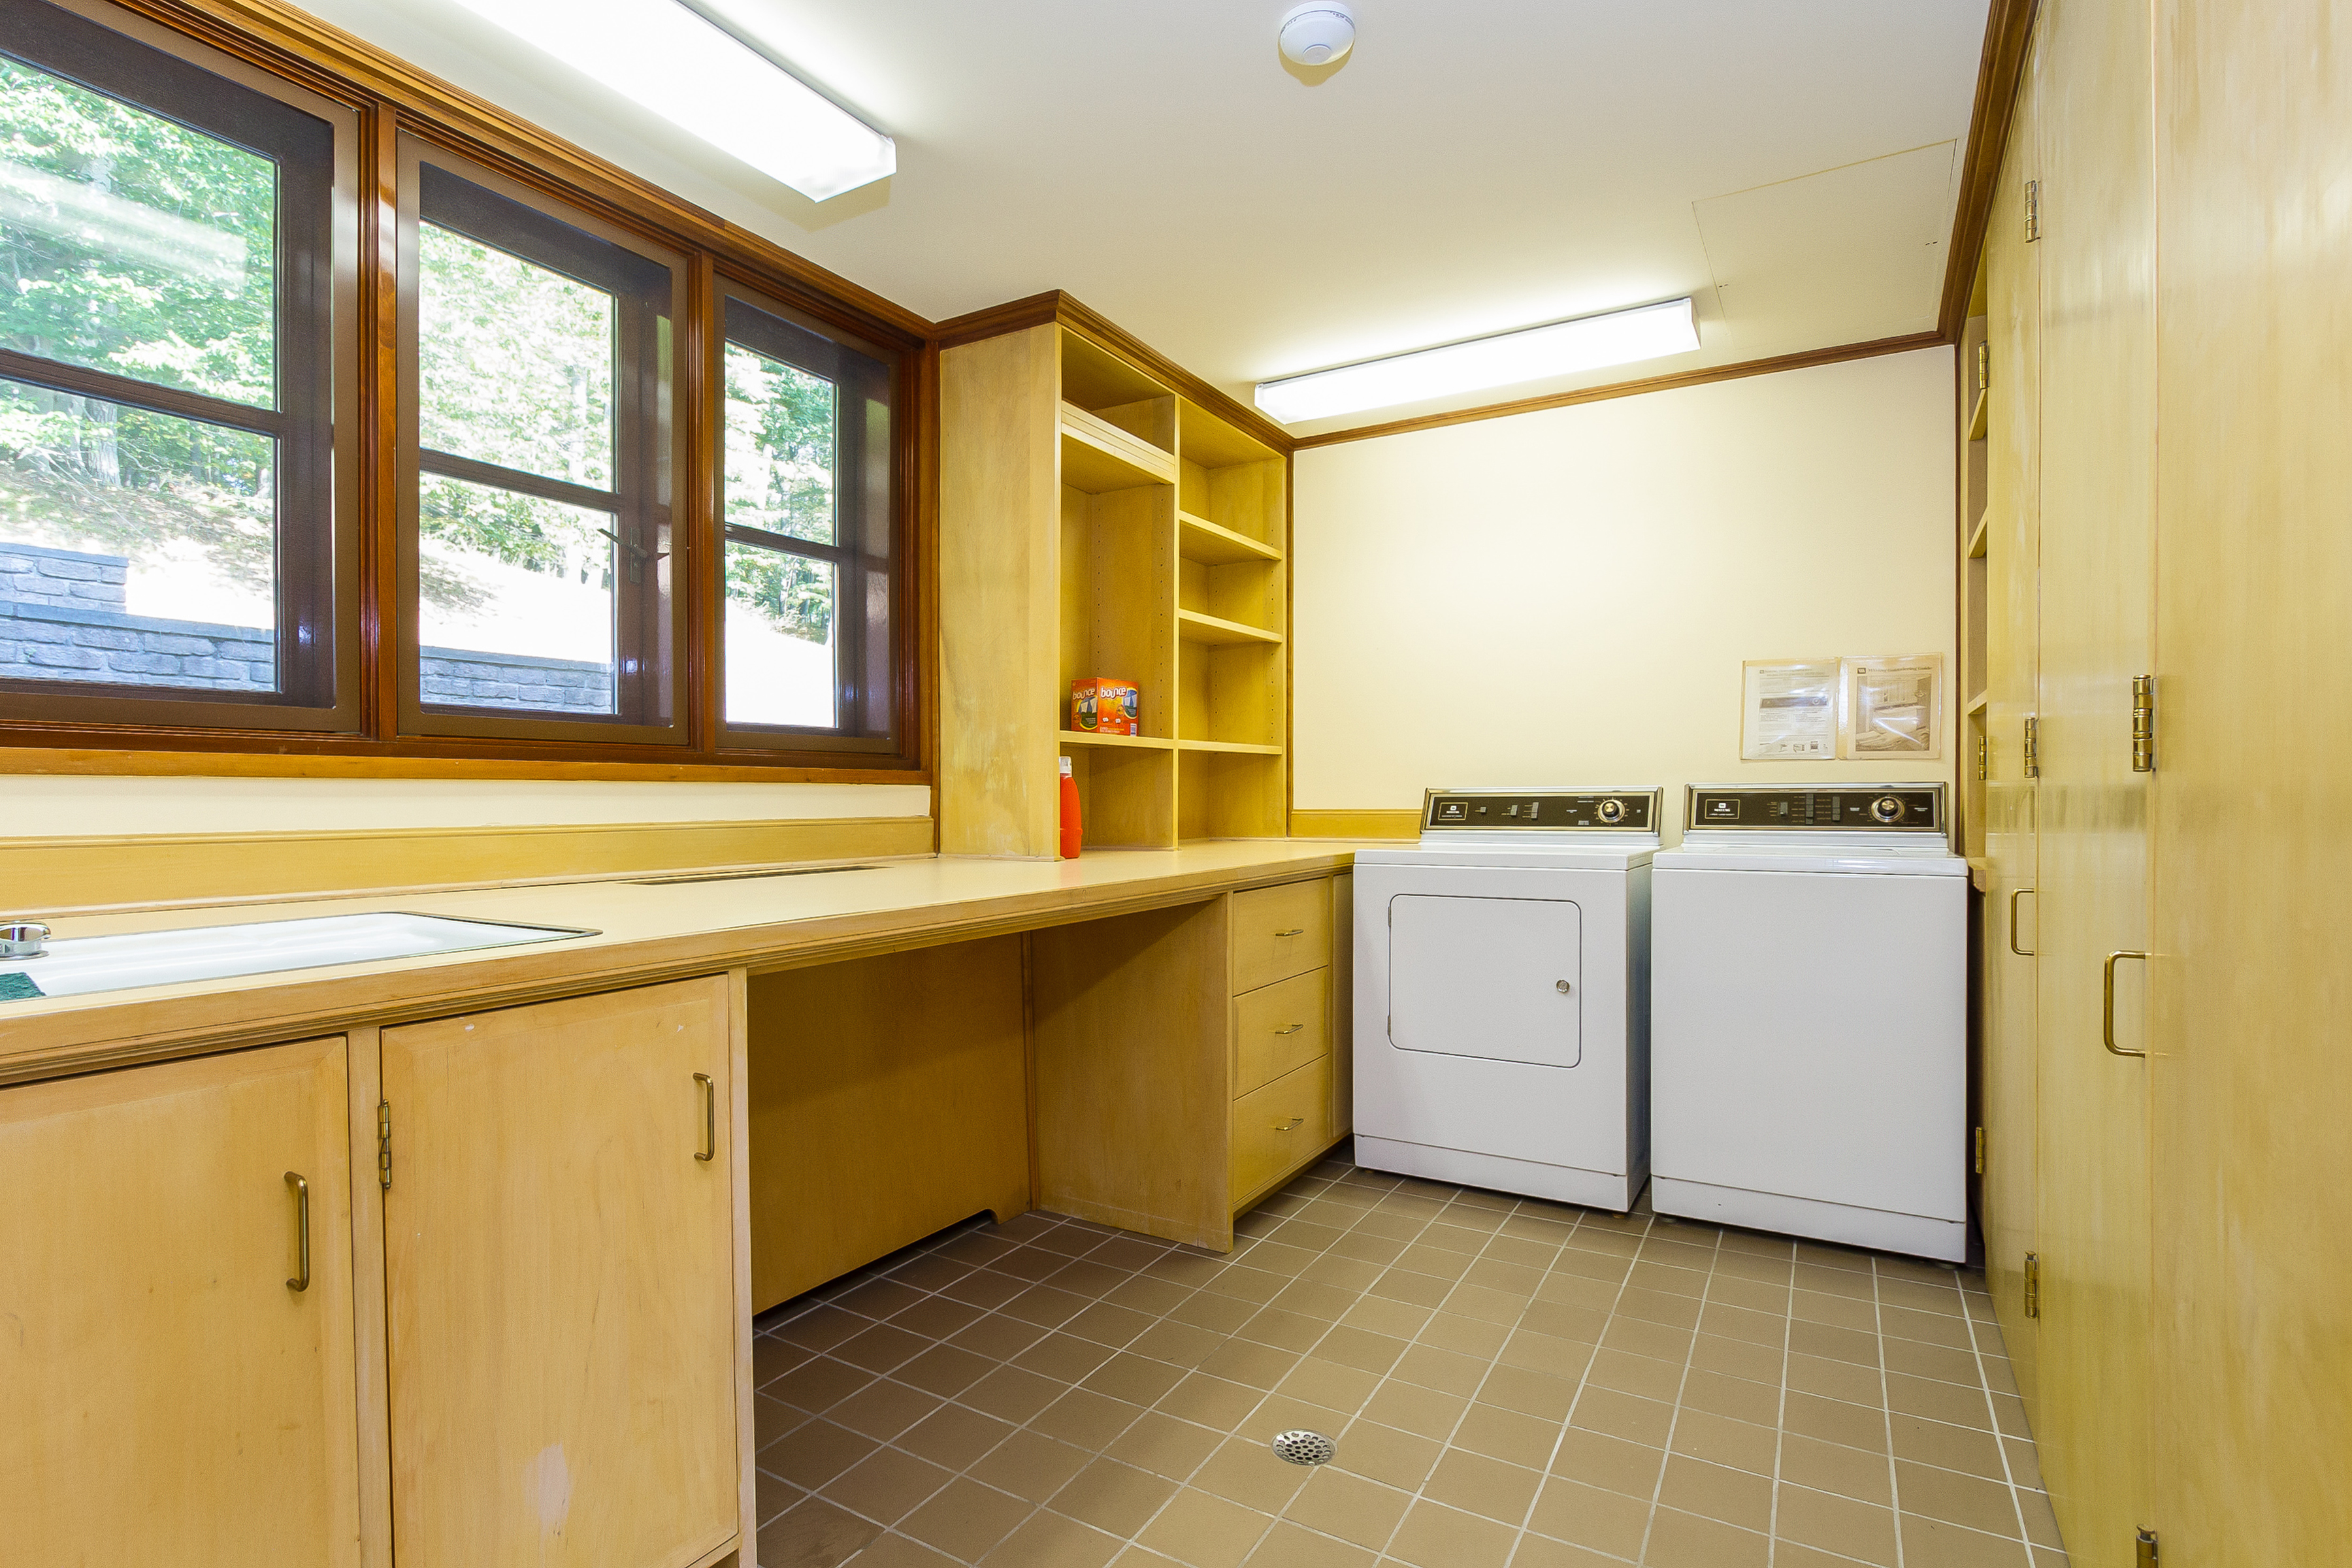 028-Laundry_Room-4840813-large